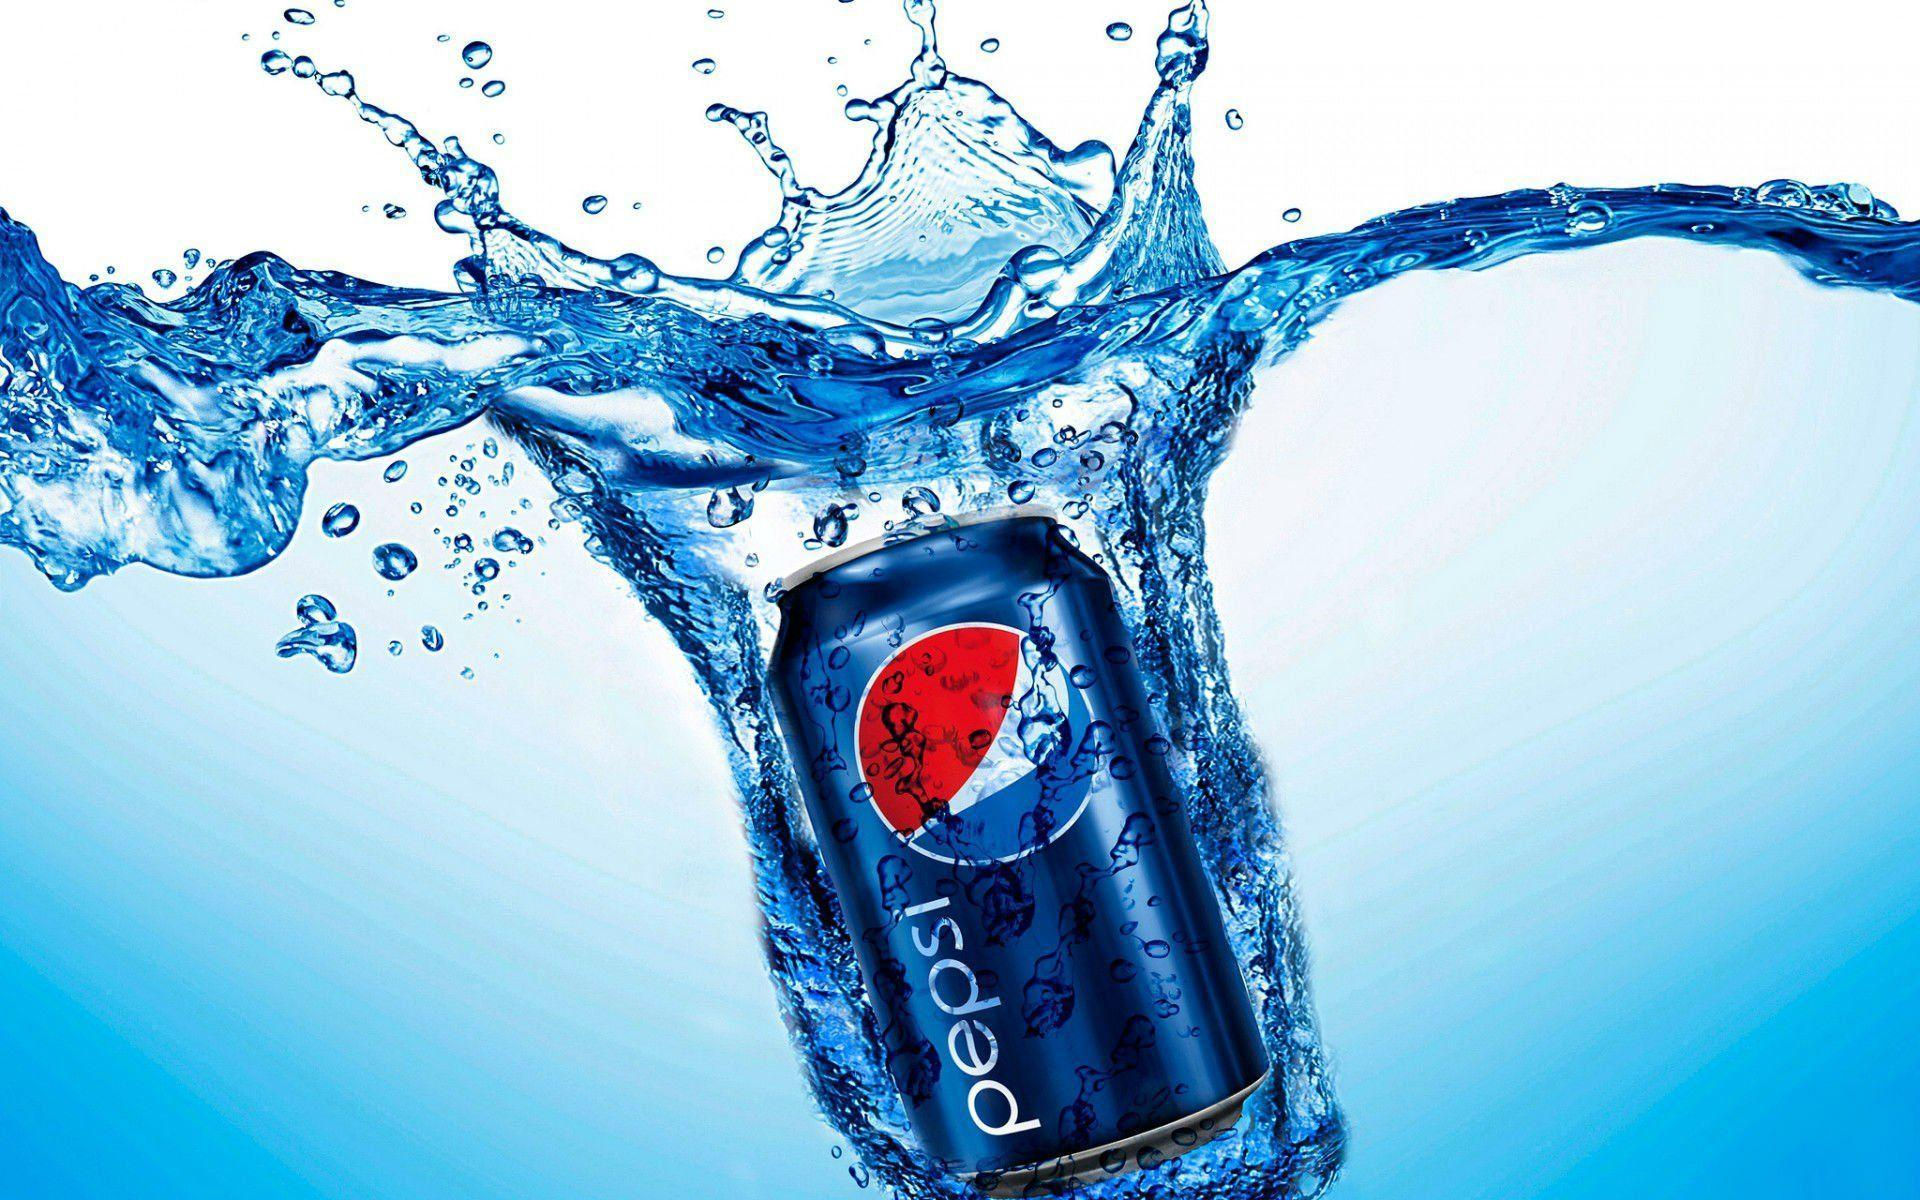 PEPSI soda drink logo poster cola drinks 1pepsi poster wallpaper ...